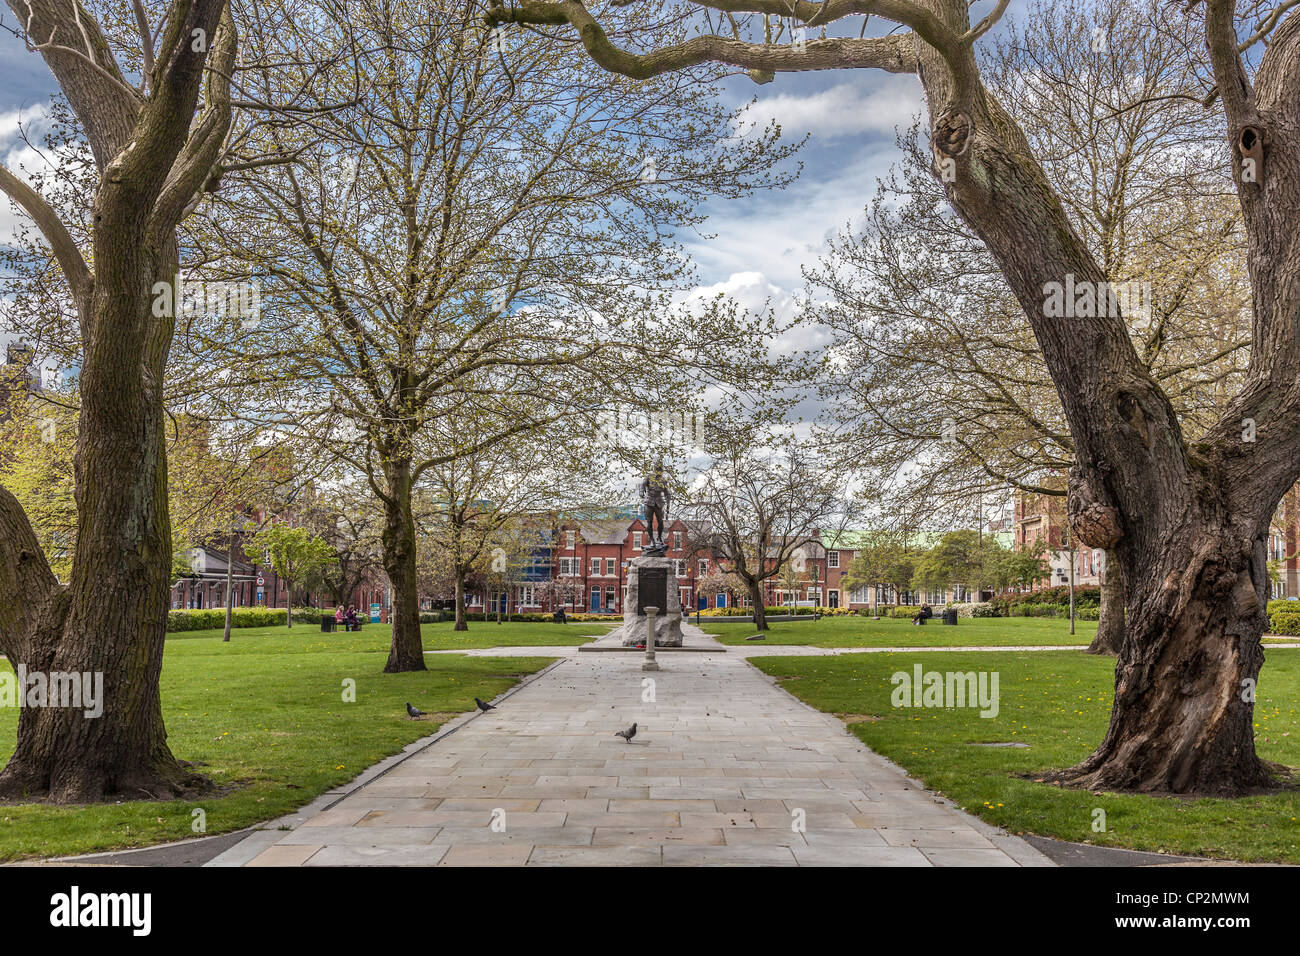 Queens Park in the centre of Warrington Palmyra Square. - Stock Image